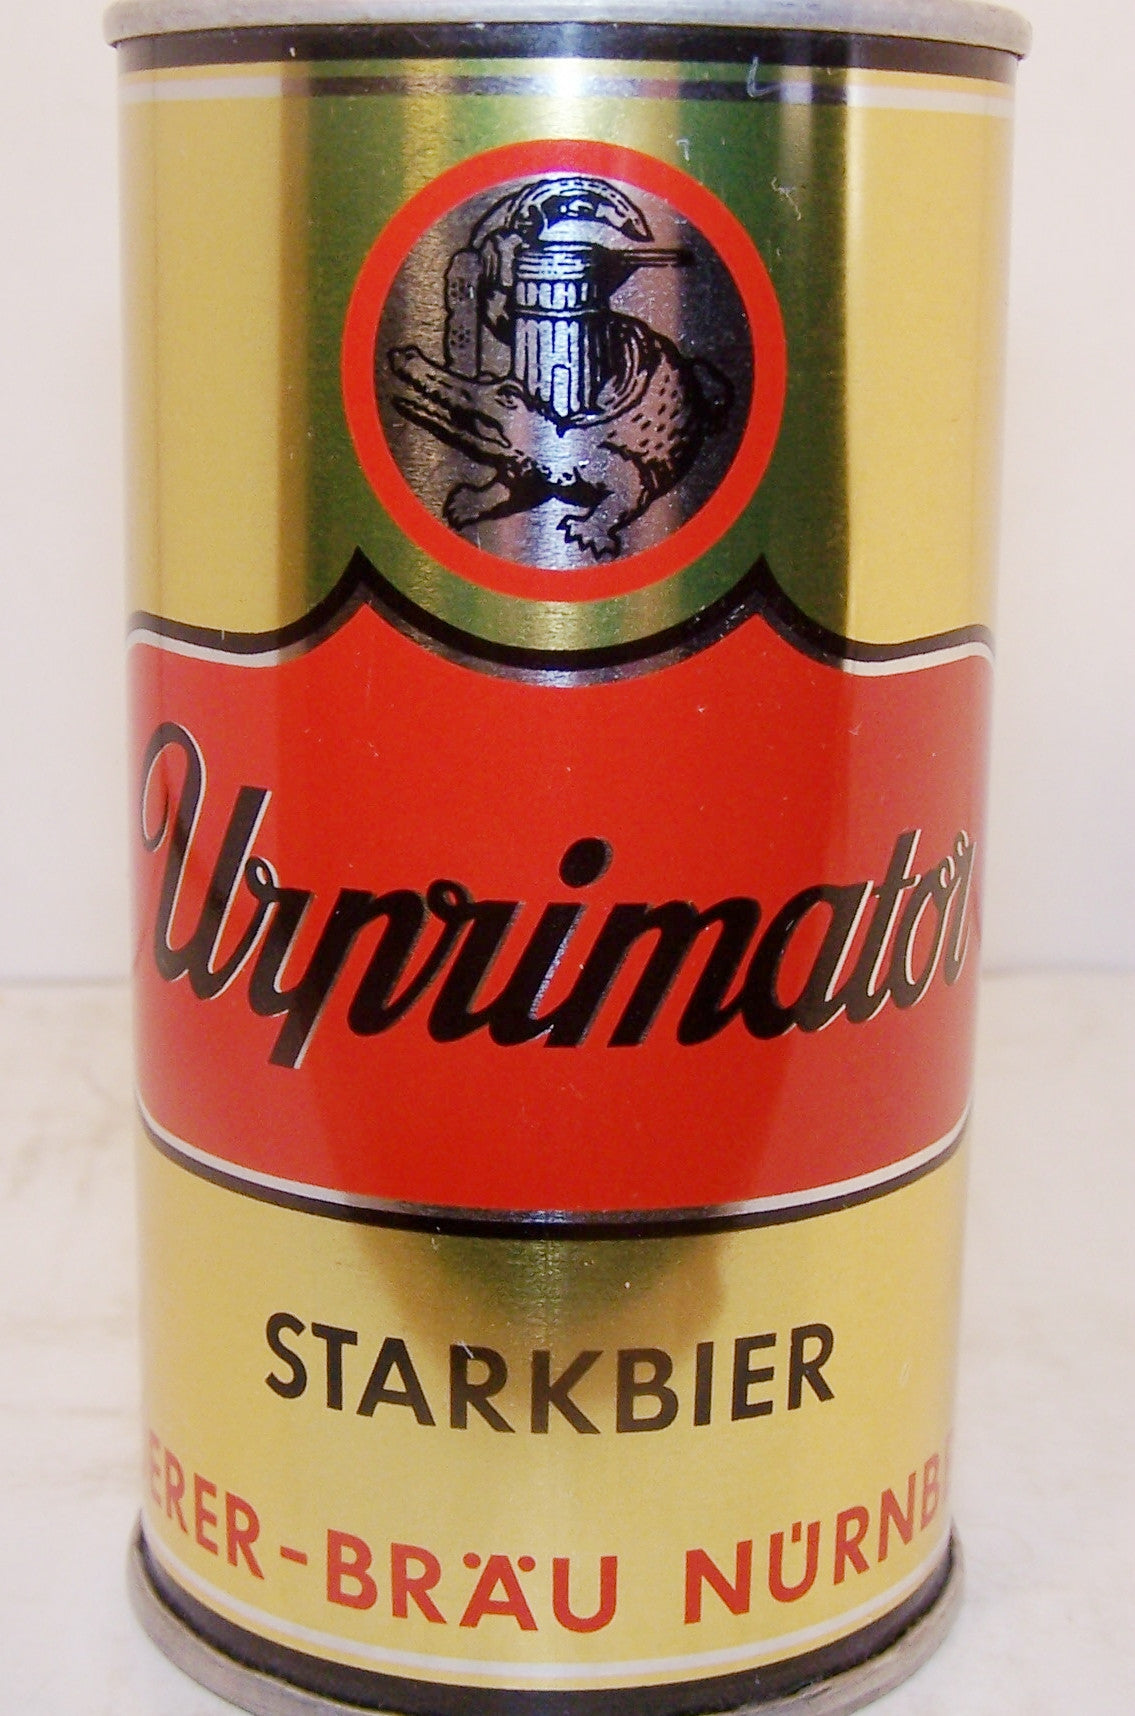 Urprimator Starkbier, can is rolled, very clean, grade A1+